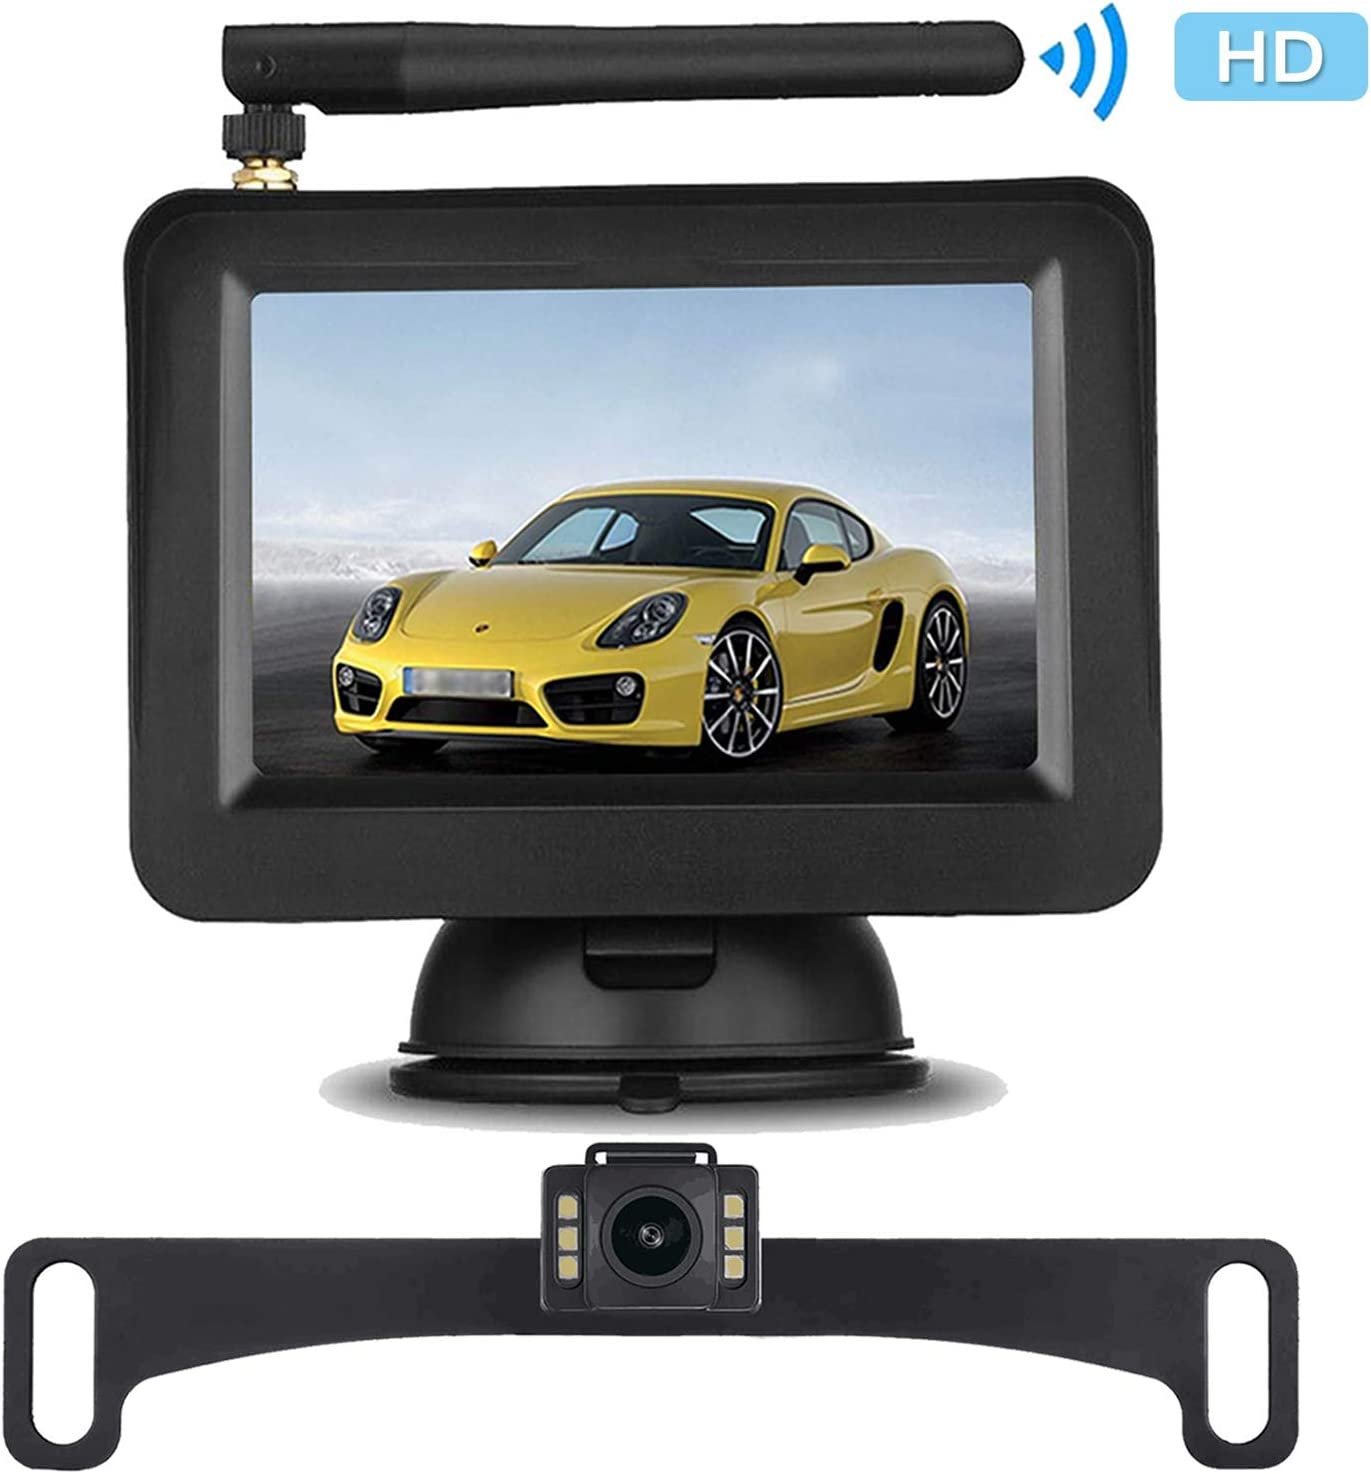 iStrong Backup Camera System for Car/SUV/Minivan with 4.3'' Monitor 7 White Light LED Night Vision Waterproof License Plate Camera with 9V-24V